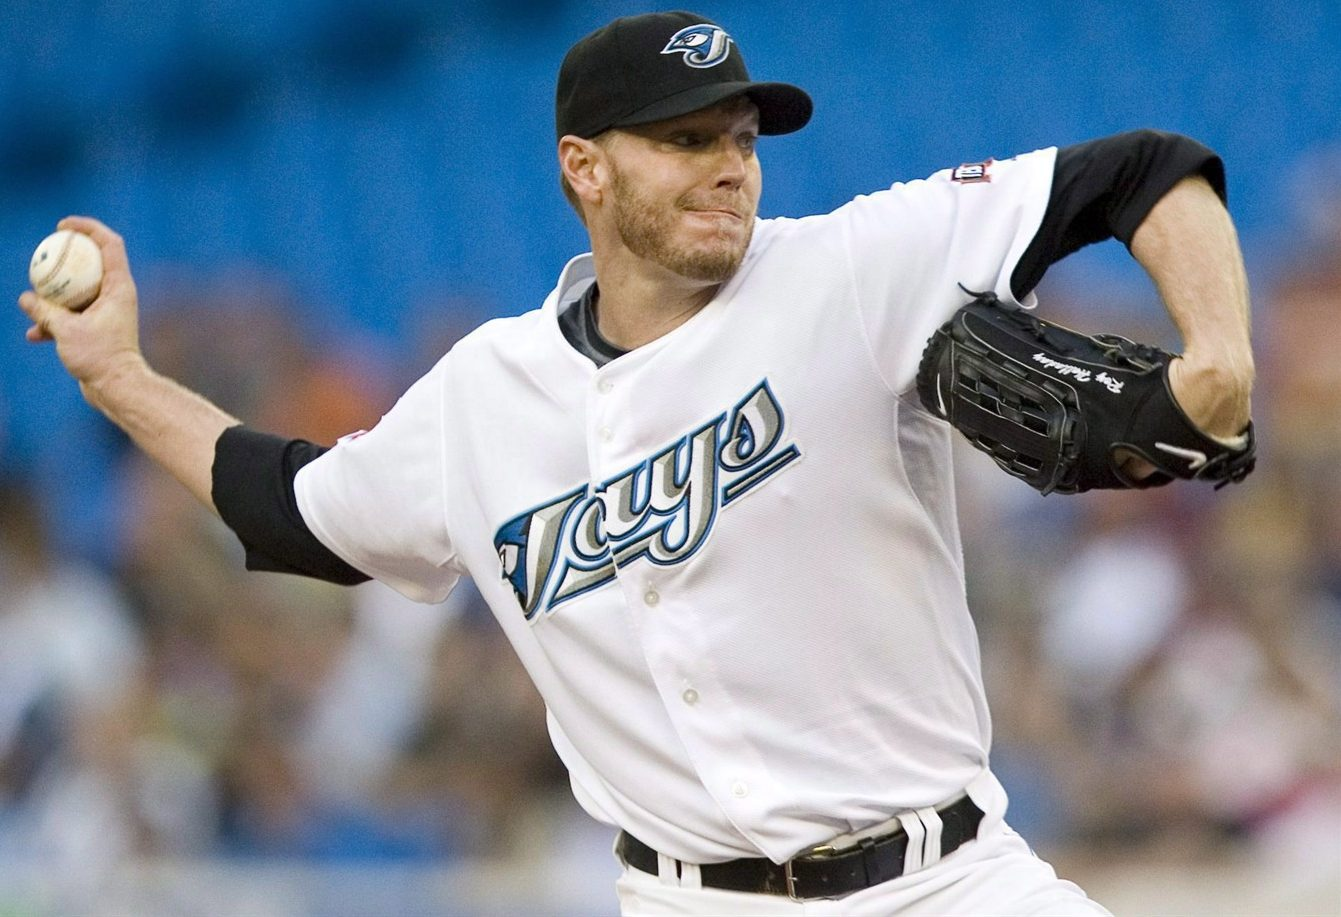 Roy Halladay autopsy reveals morphine, amphetamine in system at time of death